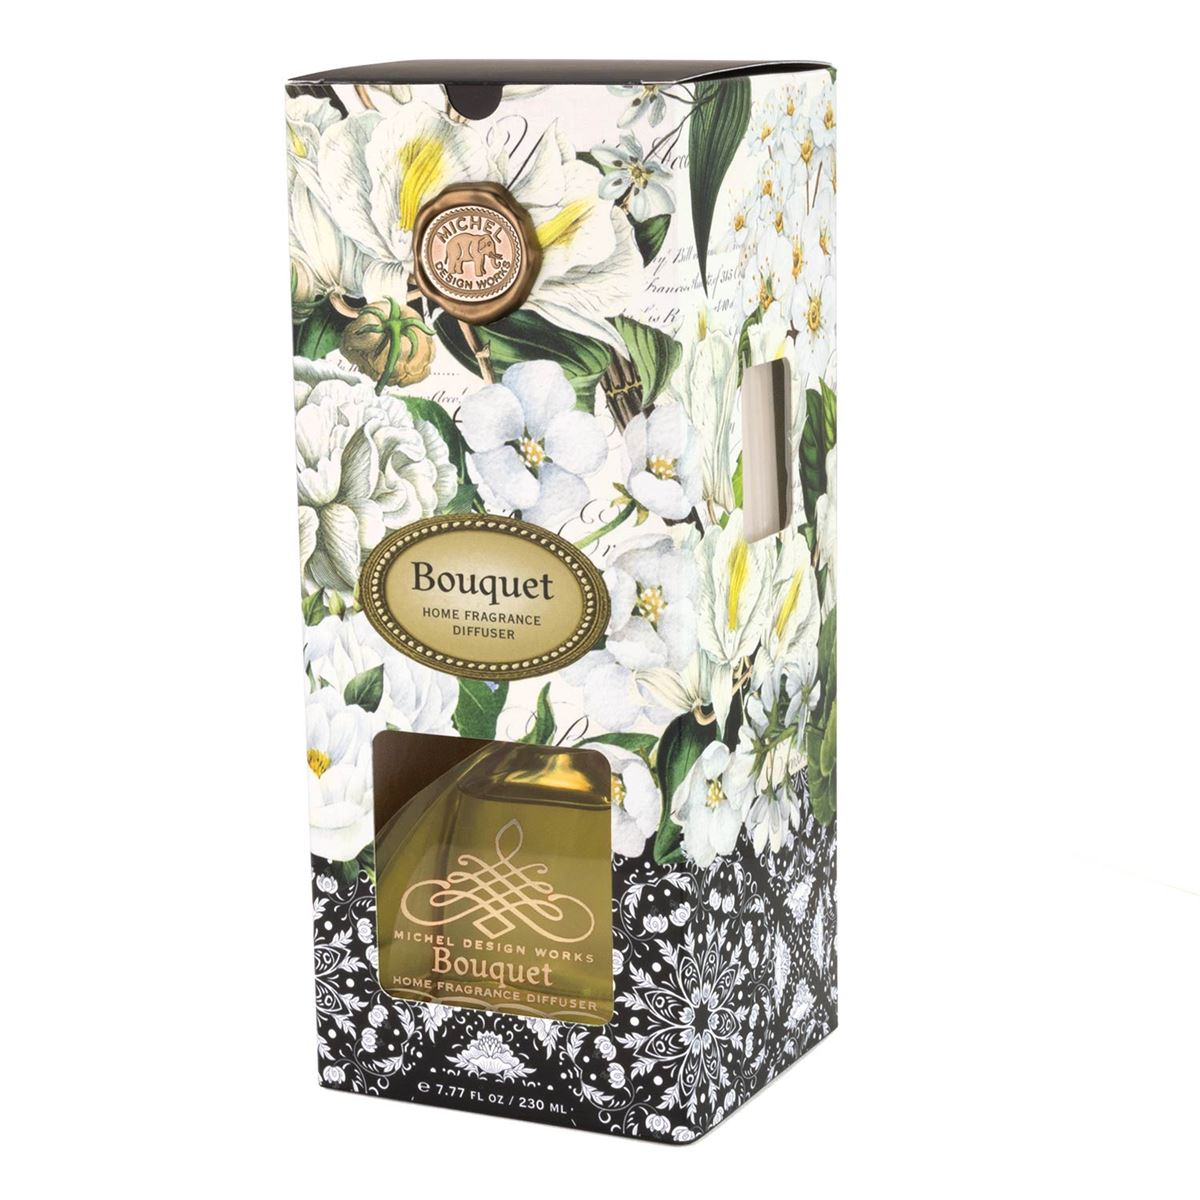 Michel Design Works Fragrance Diffuser Bouquet